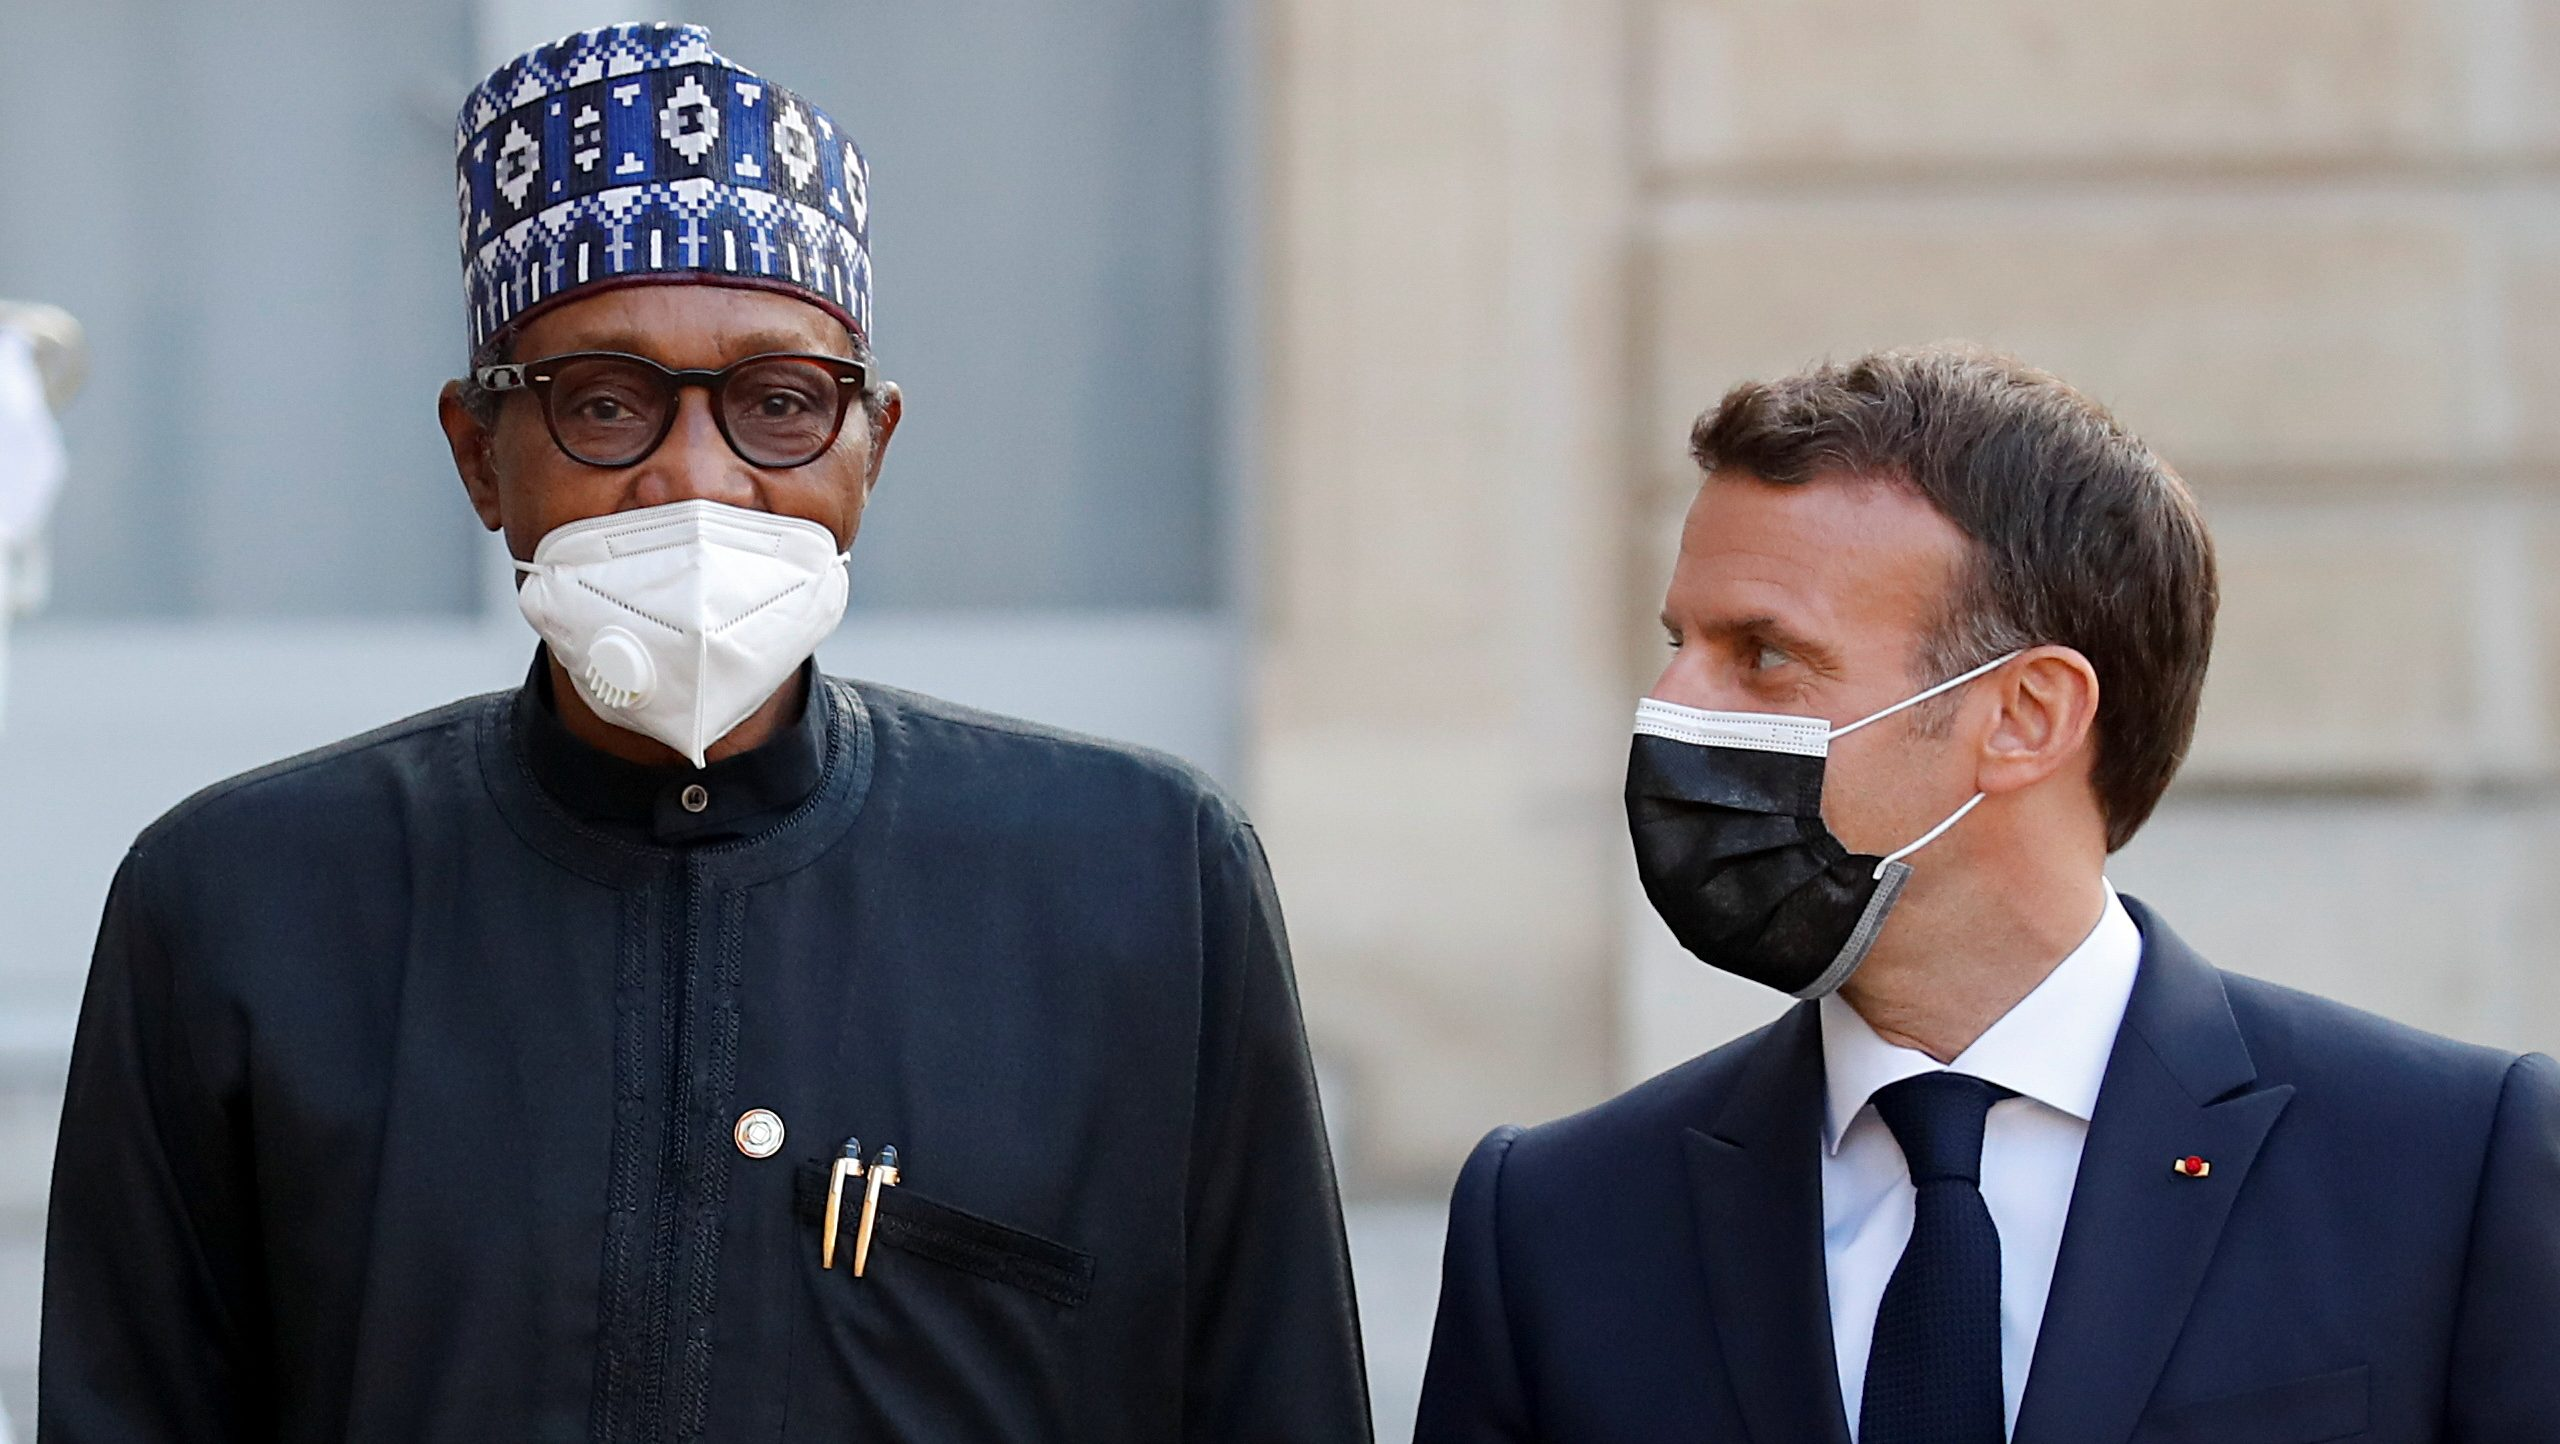 French President Emmanuel Macron welcomes Nigerian President Muhammadu Buhari for a dinner with leaders of African states and international organisations on the eve of a summit on aid for Africa, at Elysee Palace in Paris on May 17.